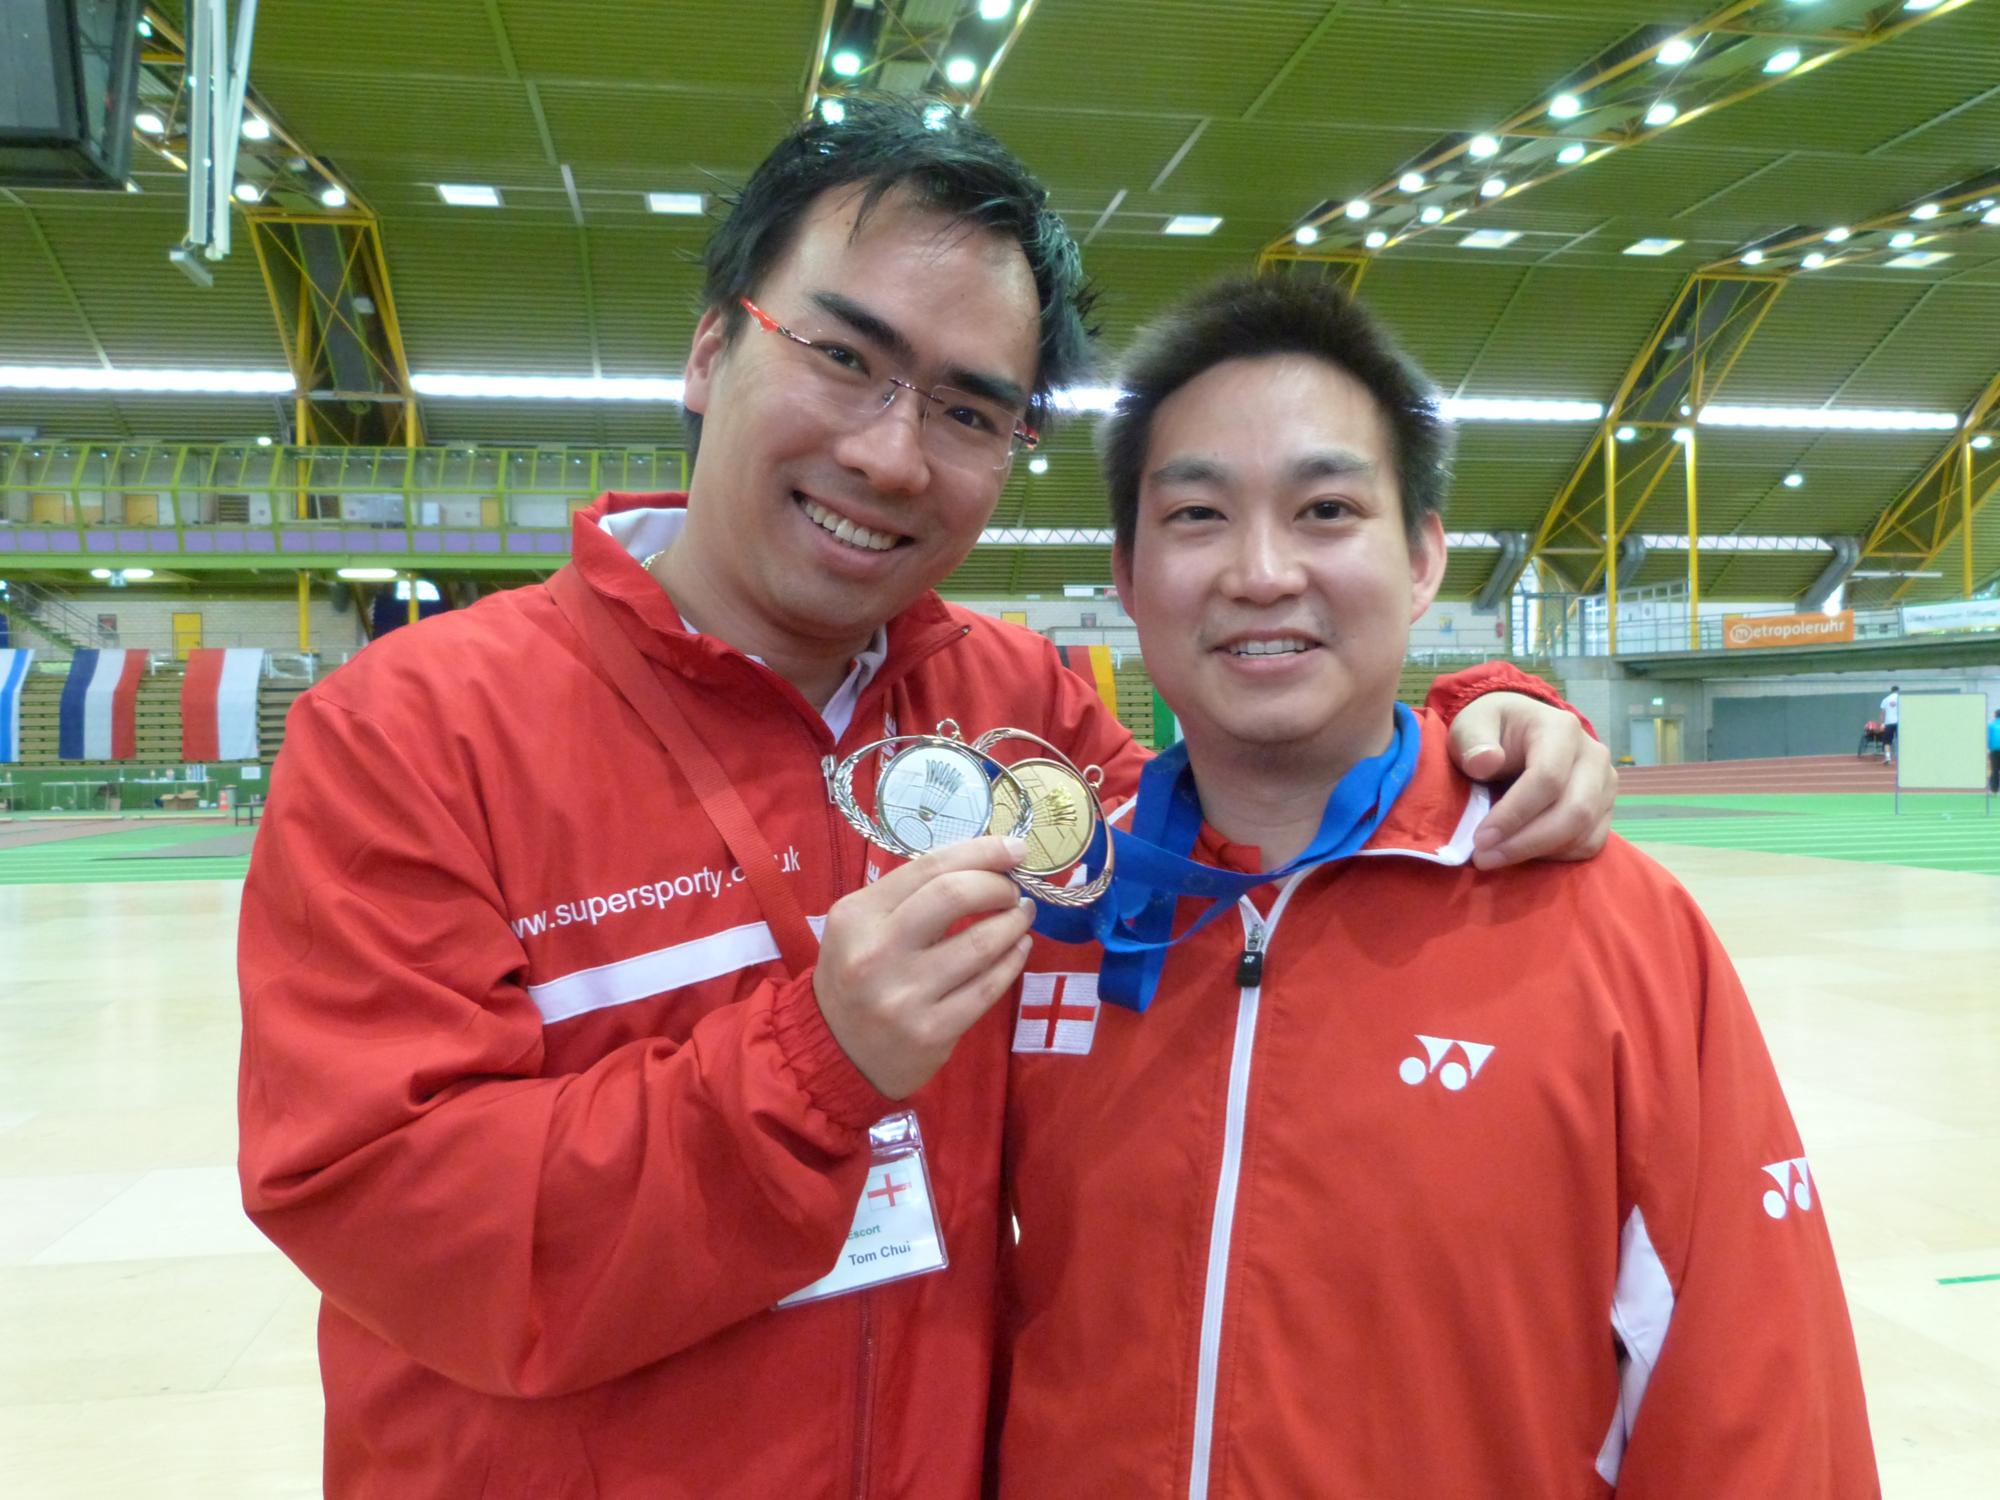 Coach Tom Chui and England Player Daniel Lee - Europeans 2012